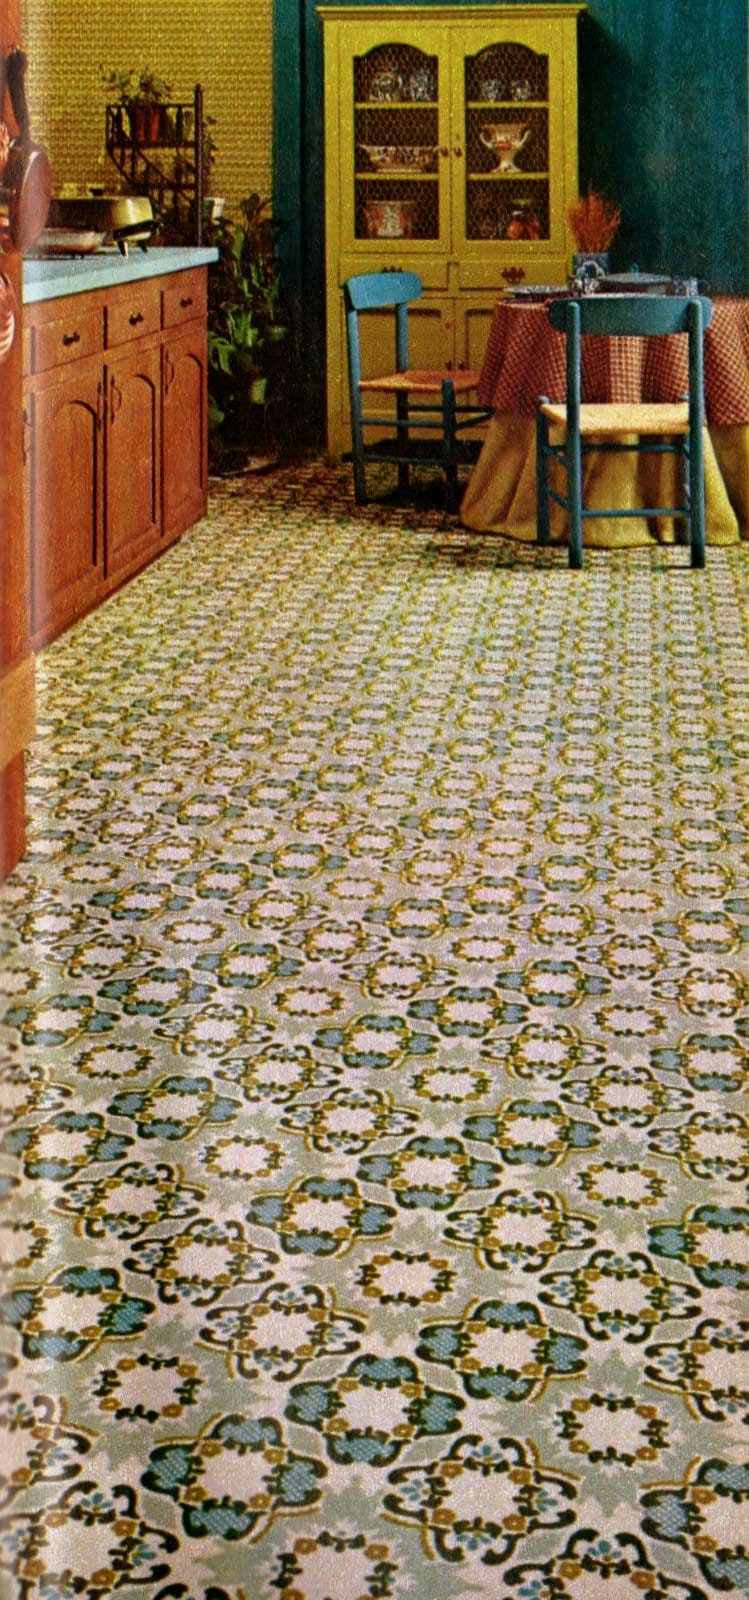 Kitchen carpeting for the home from 1973 (3)